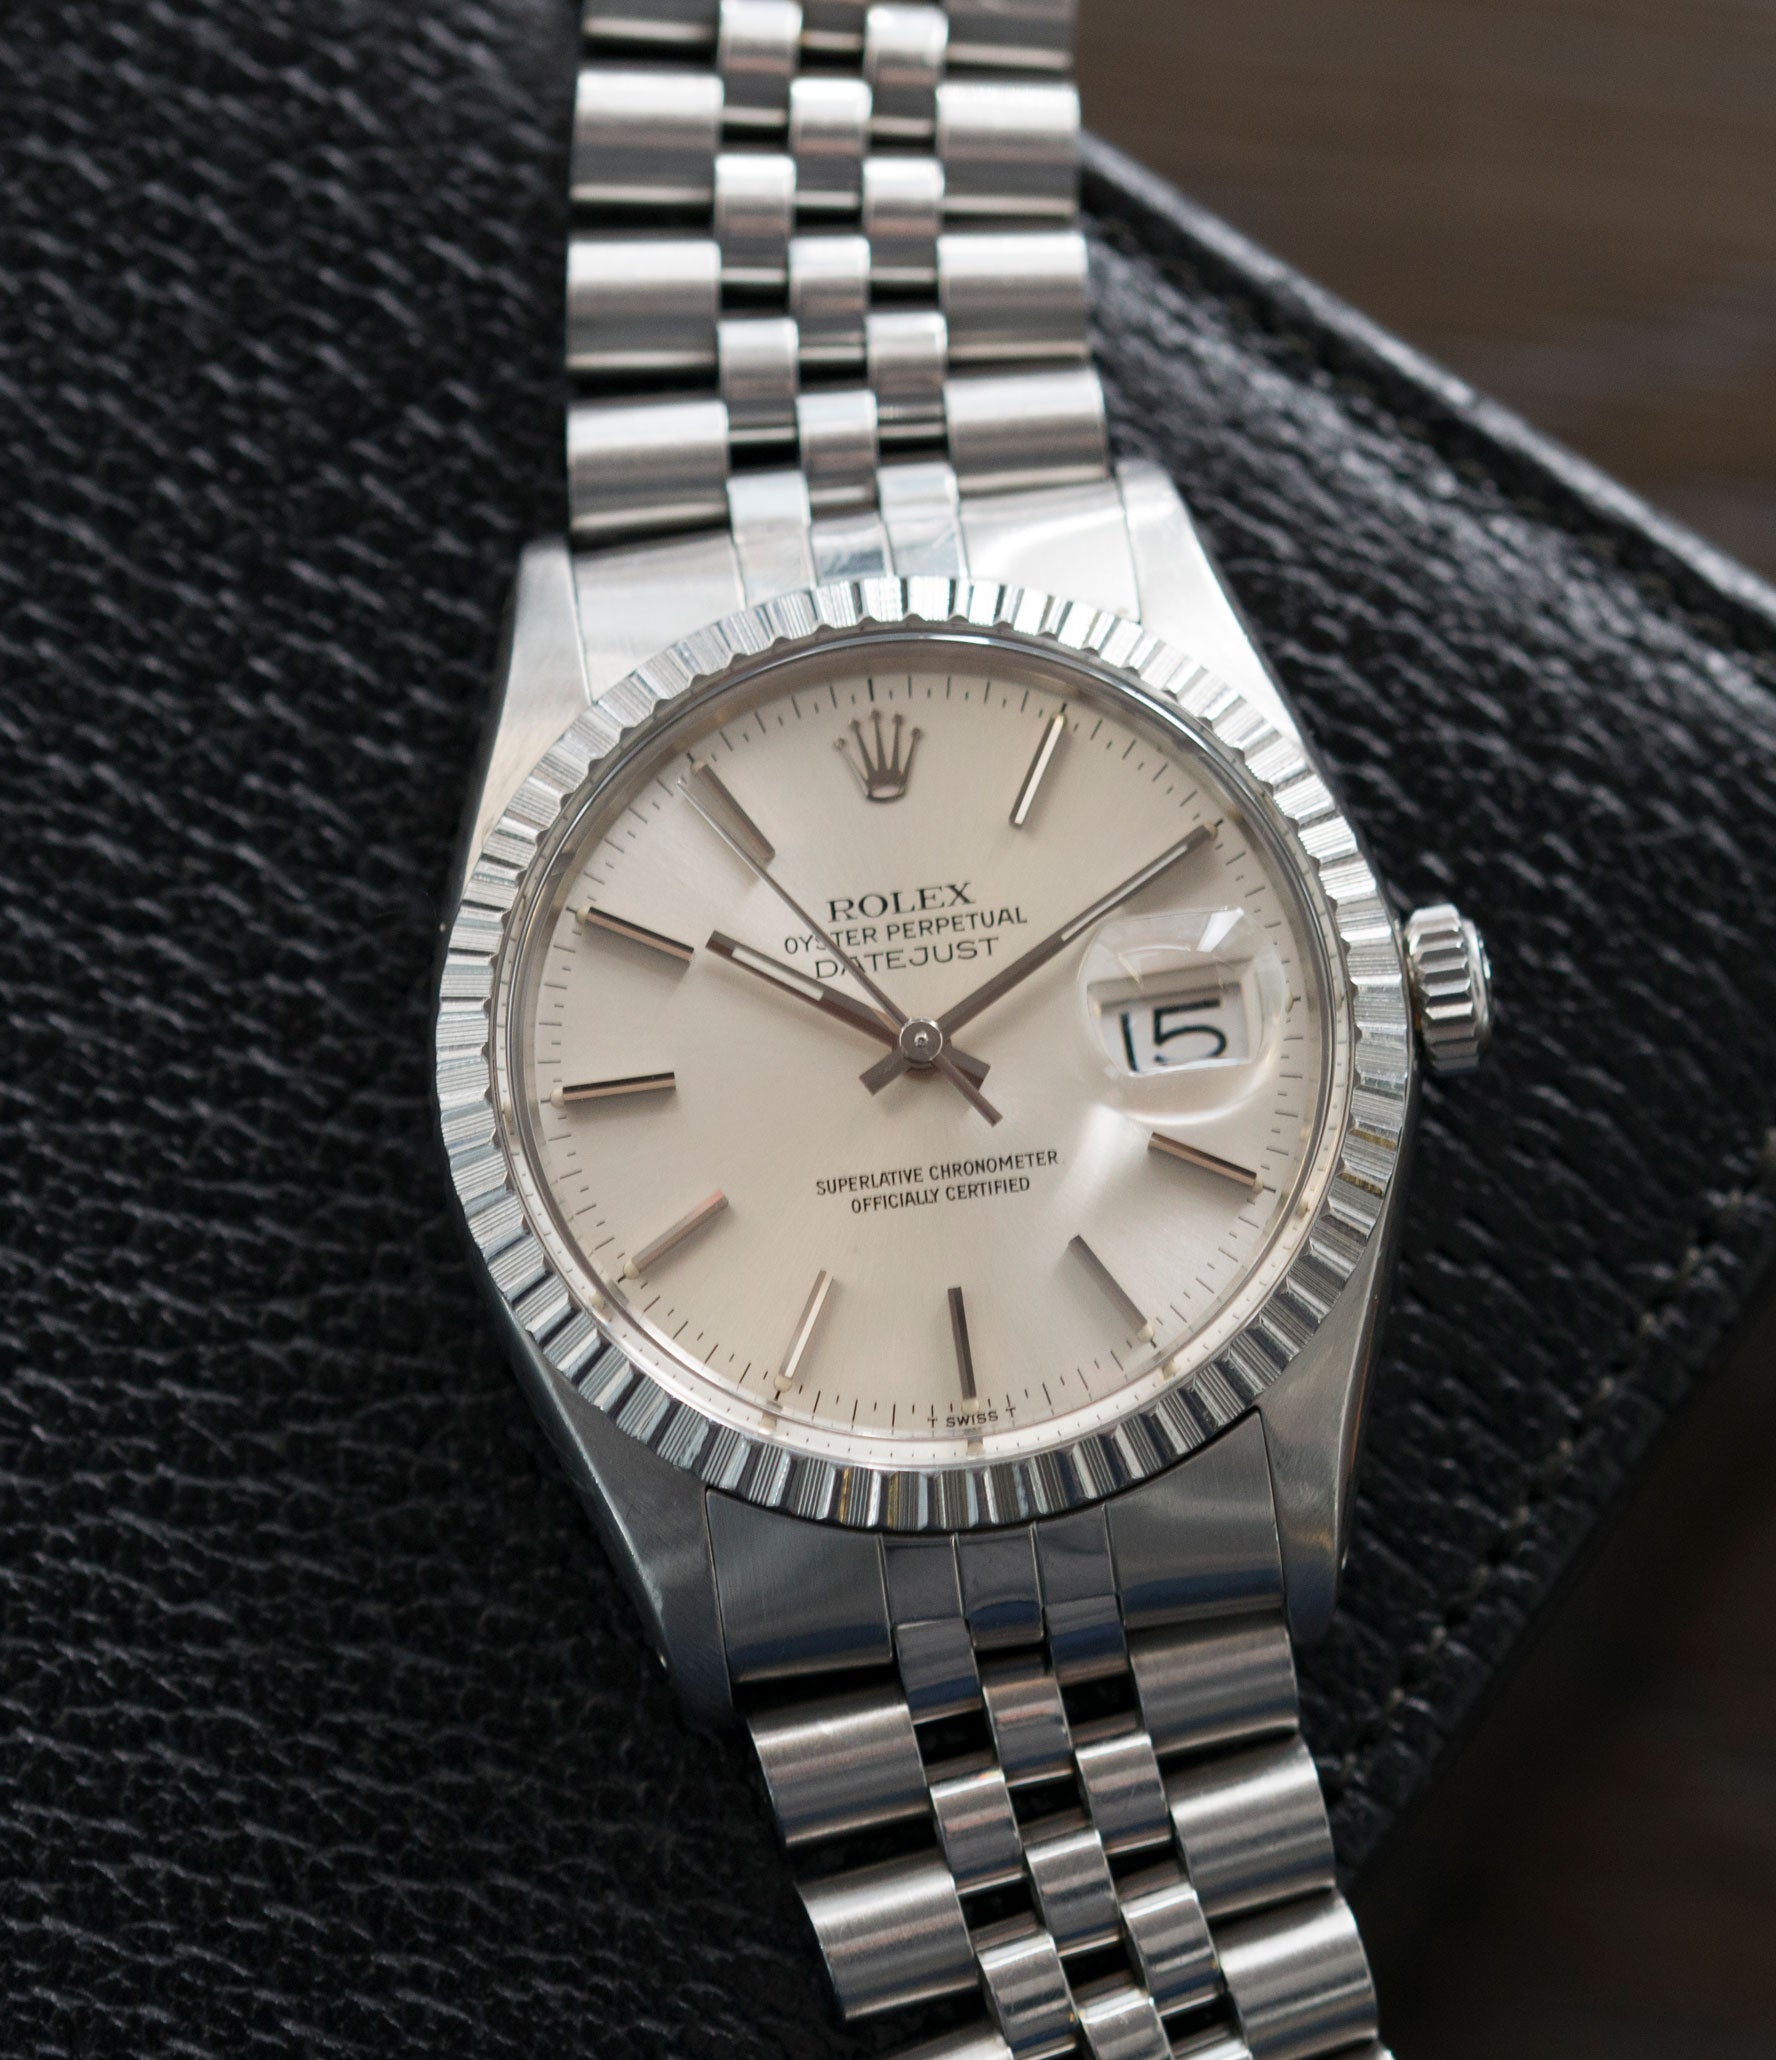 vintage full set Rolex Oyster Perpetual Datejust 16030 steel automatic silver dial watch Jubilee bracelet for sale online at A Collected Man London UK vintage watch specialist